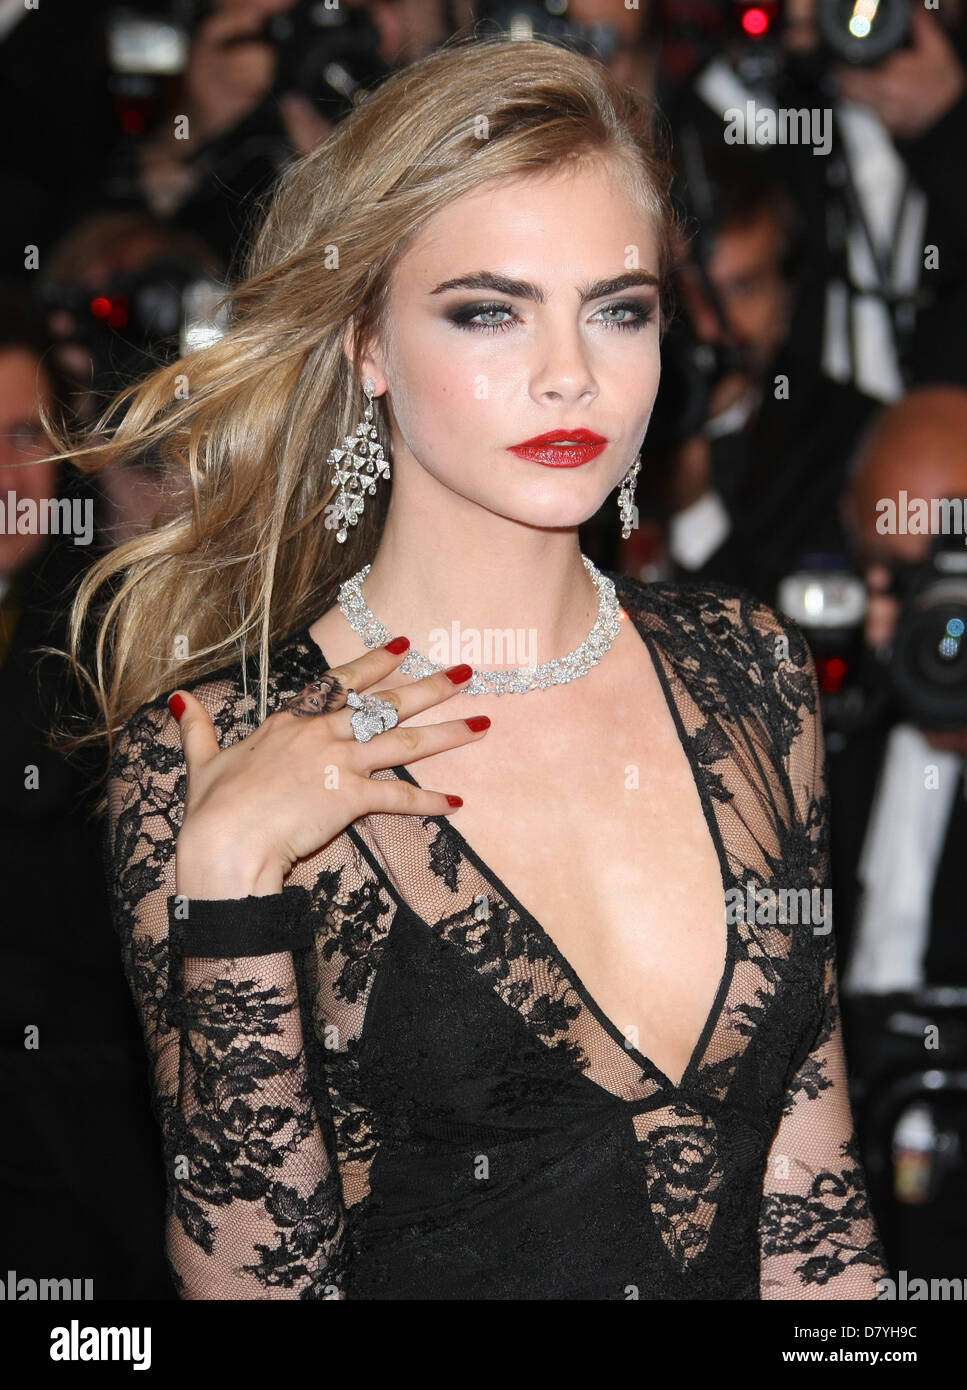 Cara Delevingne The Great Gatsby Premiere Opening Night